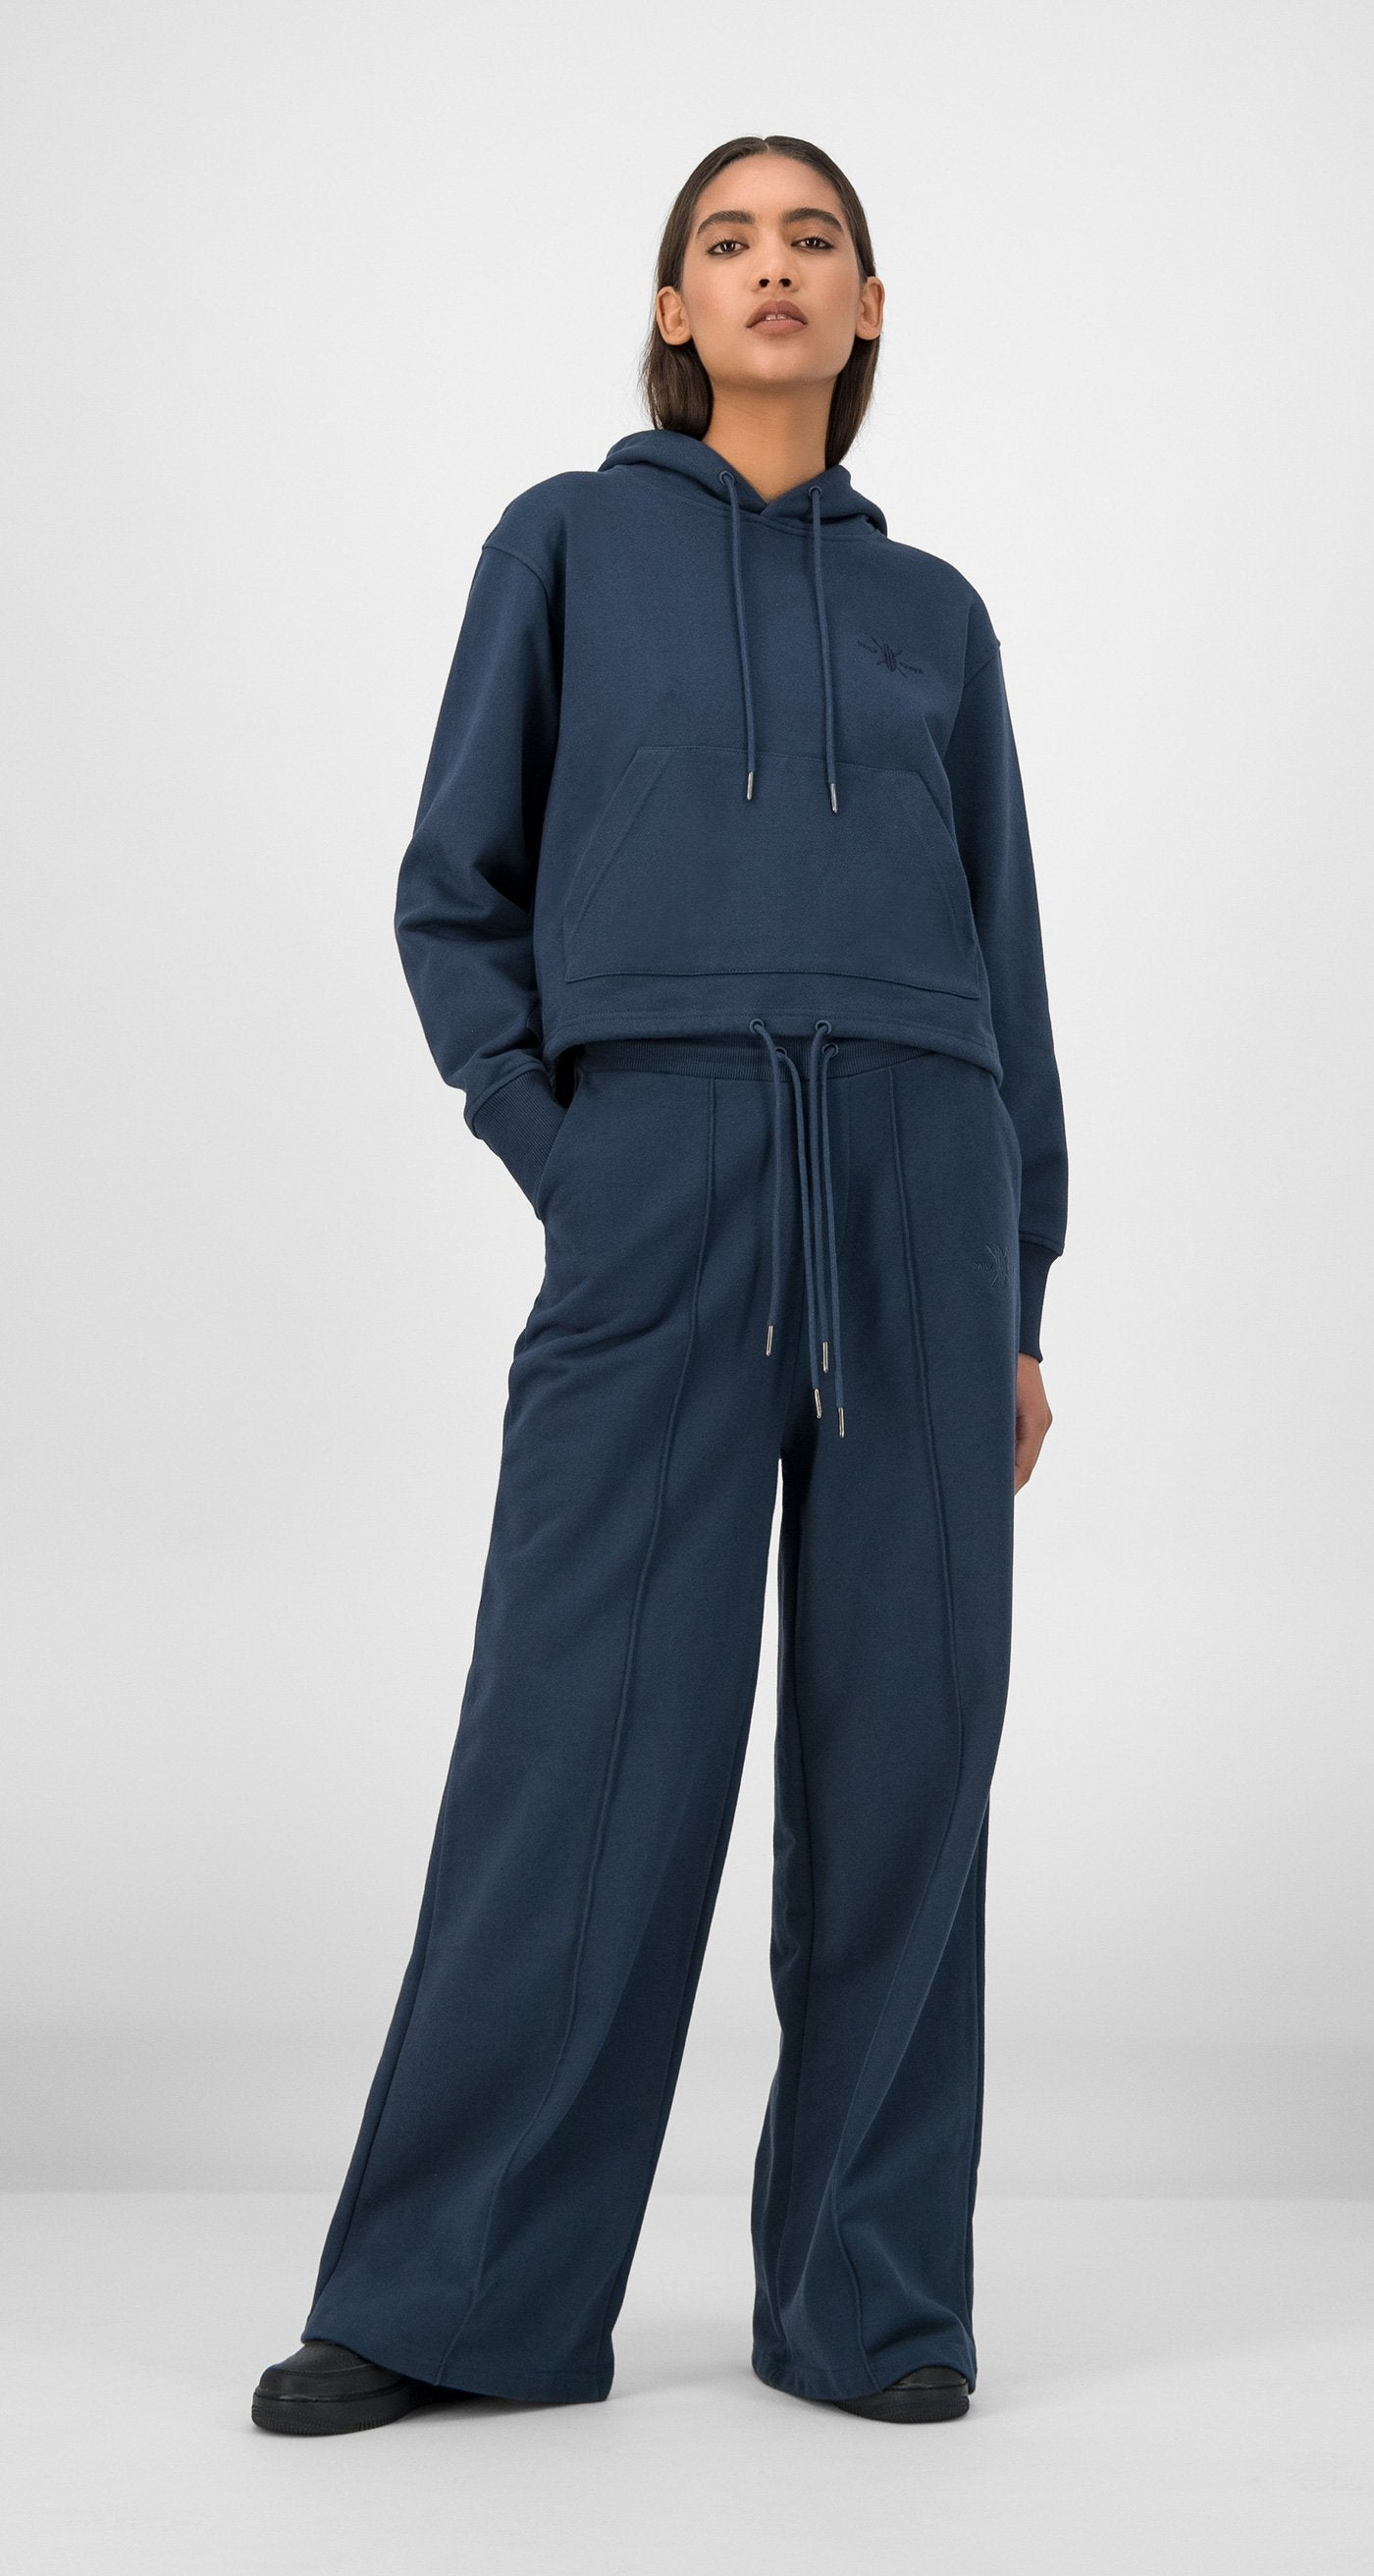 Daily Paper - Navy GIfa Pants Women Front